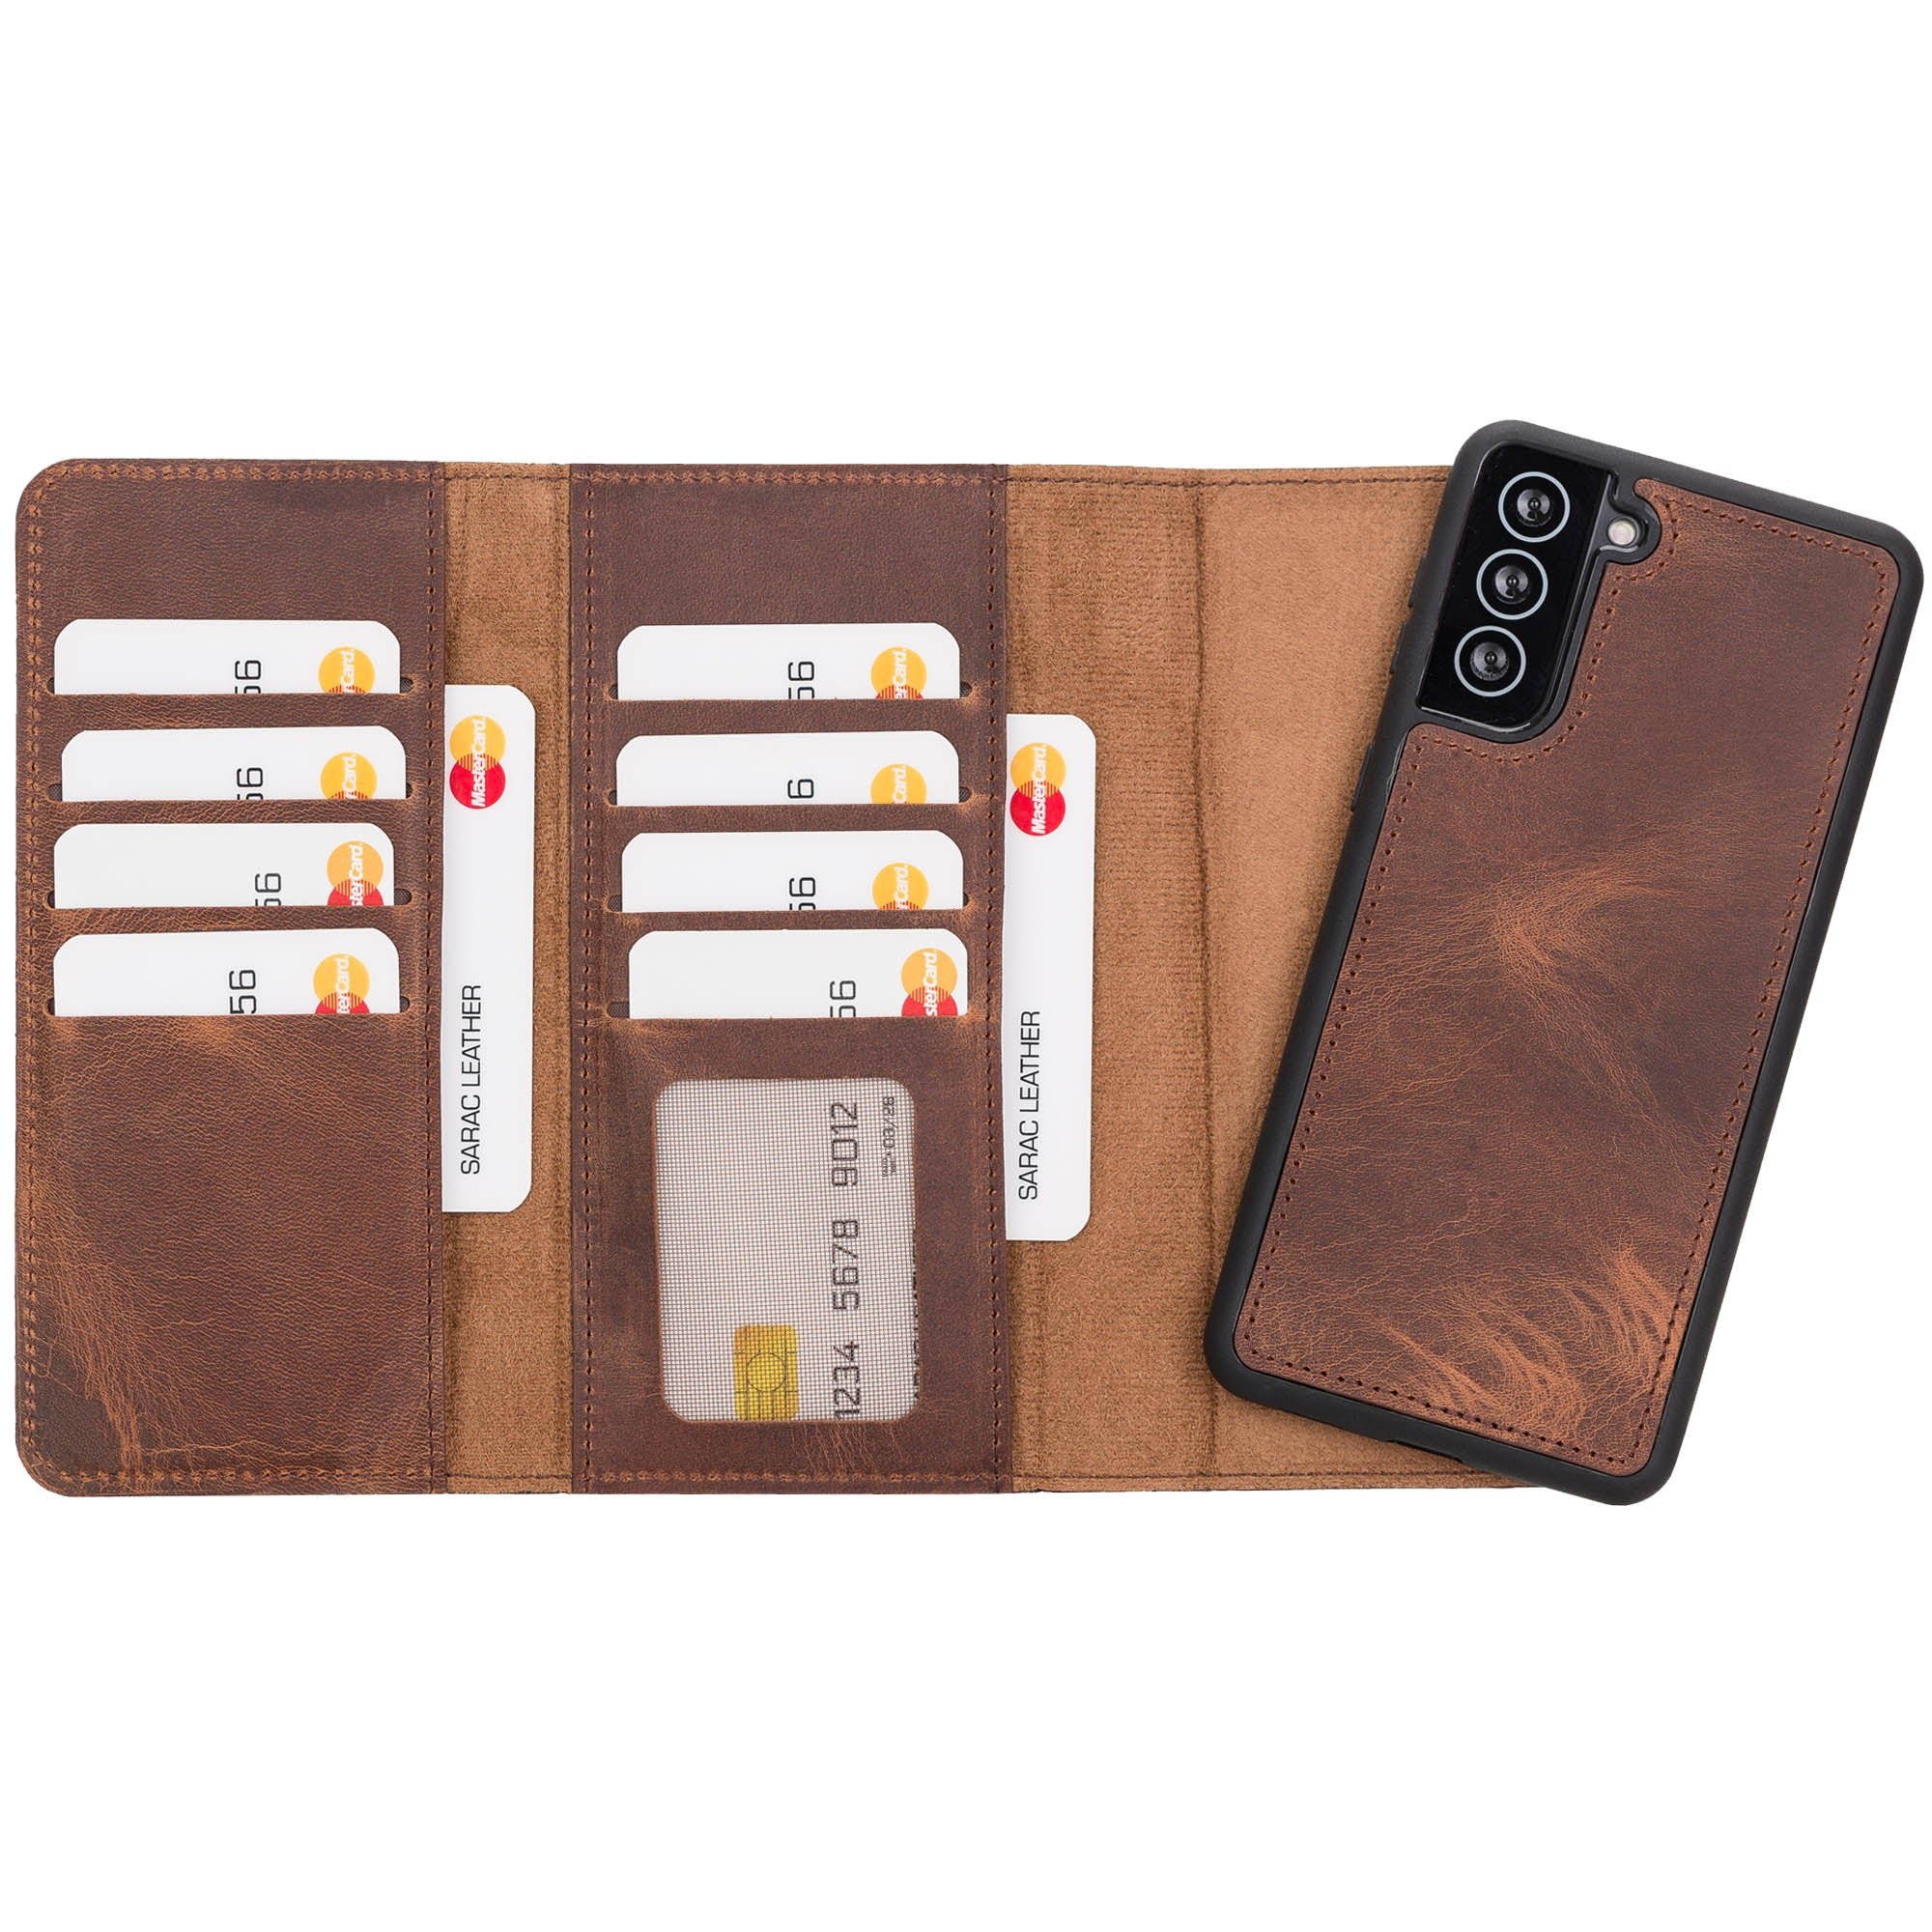 "Santa Magnetic Detachable Leather Wallet Case for Samsung Galaxy S21 Plus 5G (6.7"") - BROWN - saracleather"